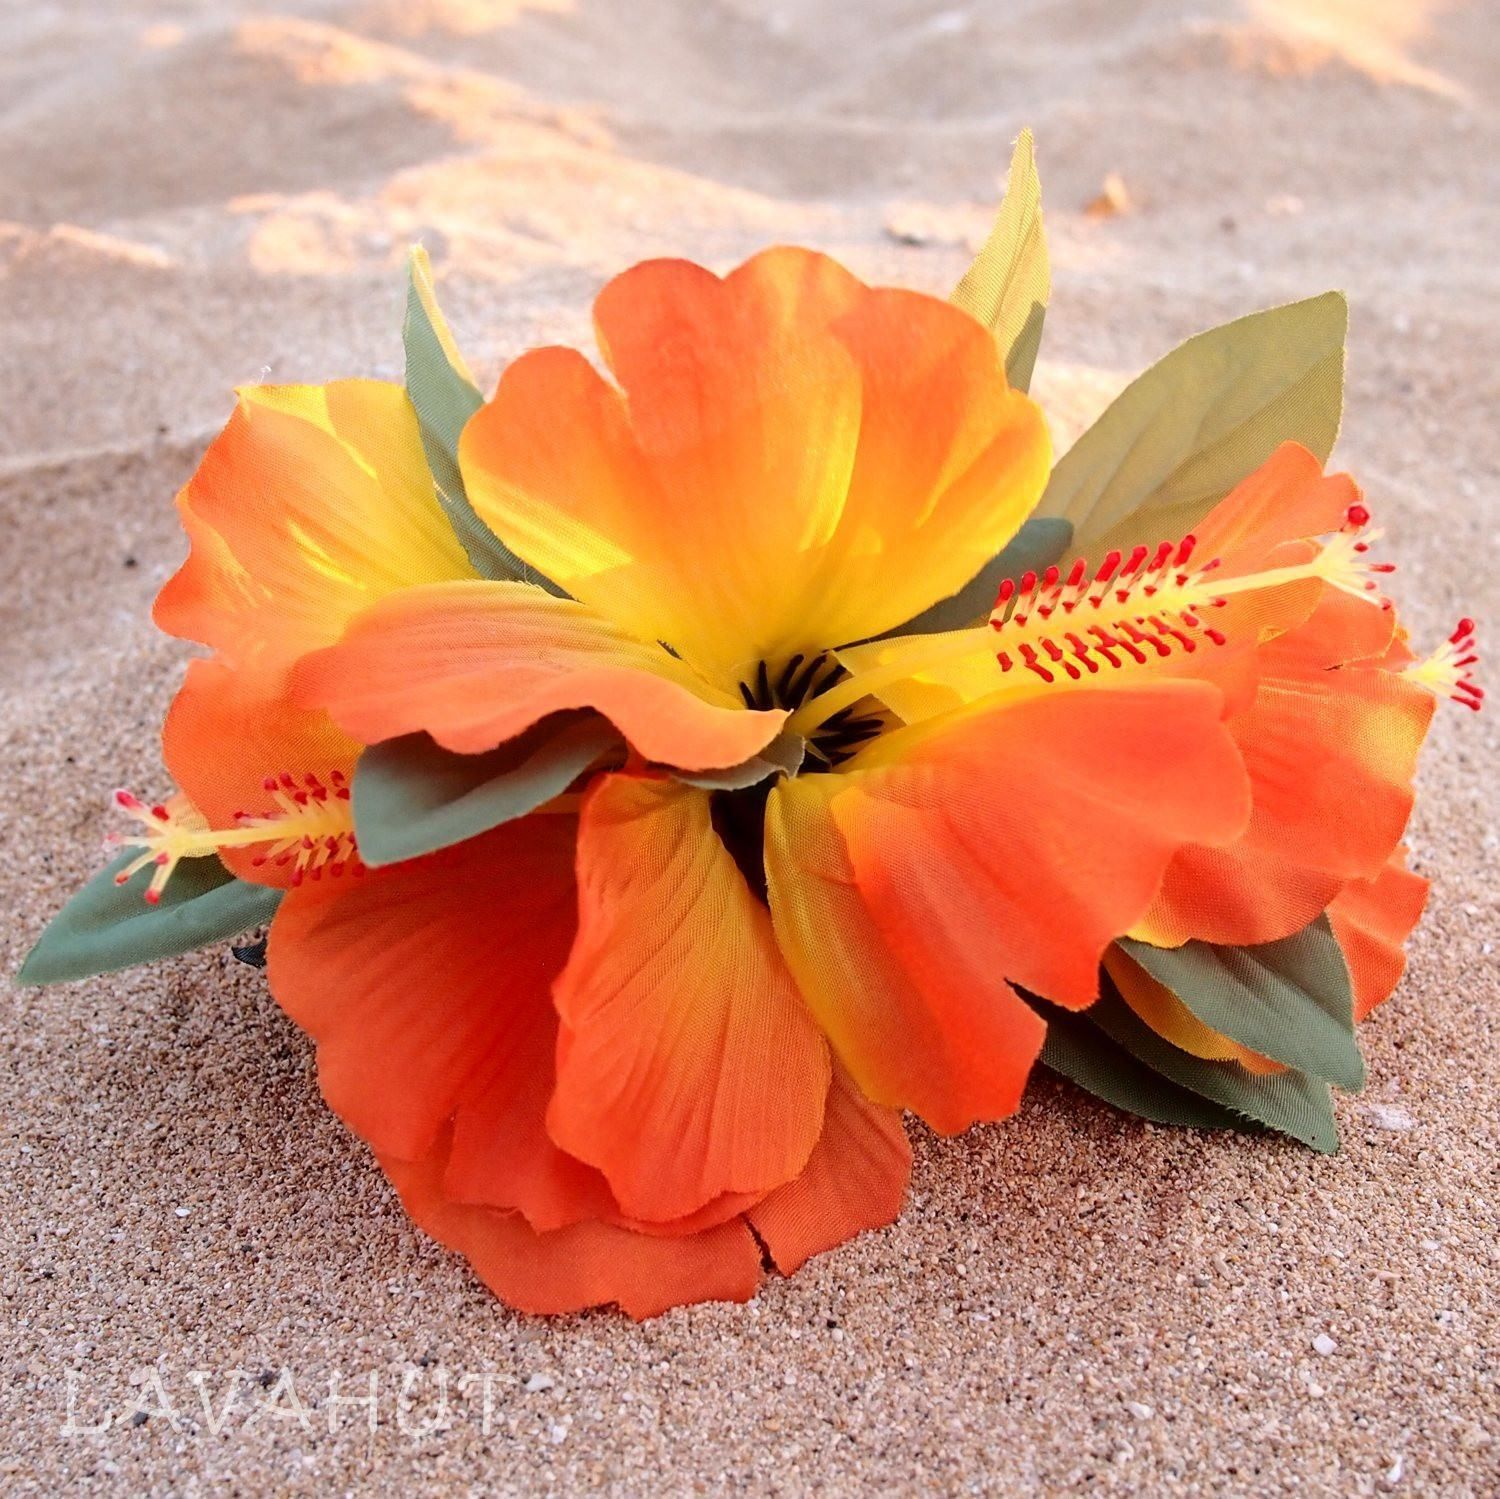 Hibiscus orange hawaiian flower hair clip madeinhawaii hawaiian hibiscus orange hawaiian flower hair clip madeinhawaii hawaiian izmirmasajfo